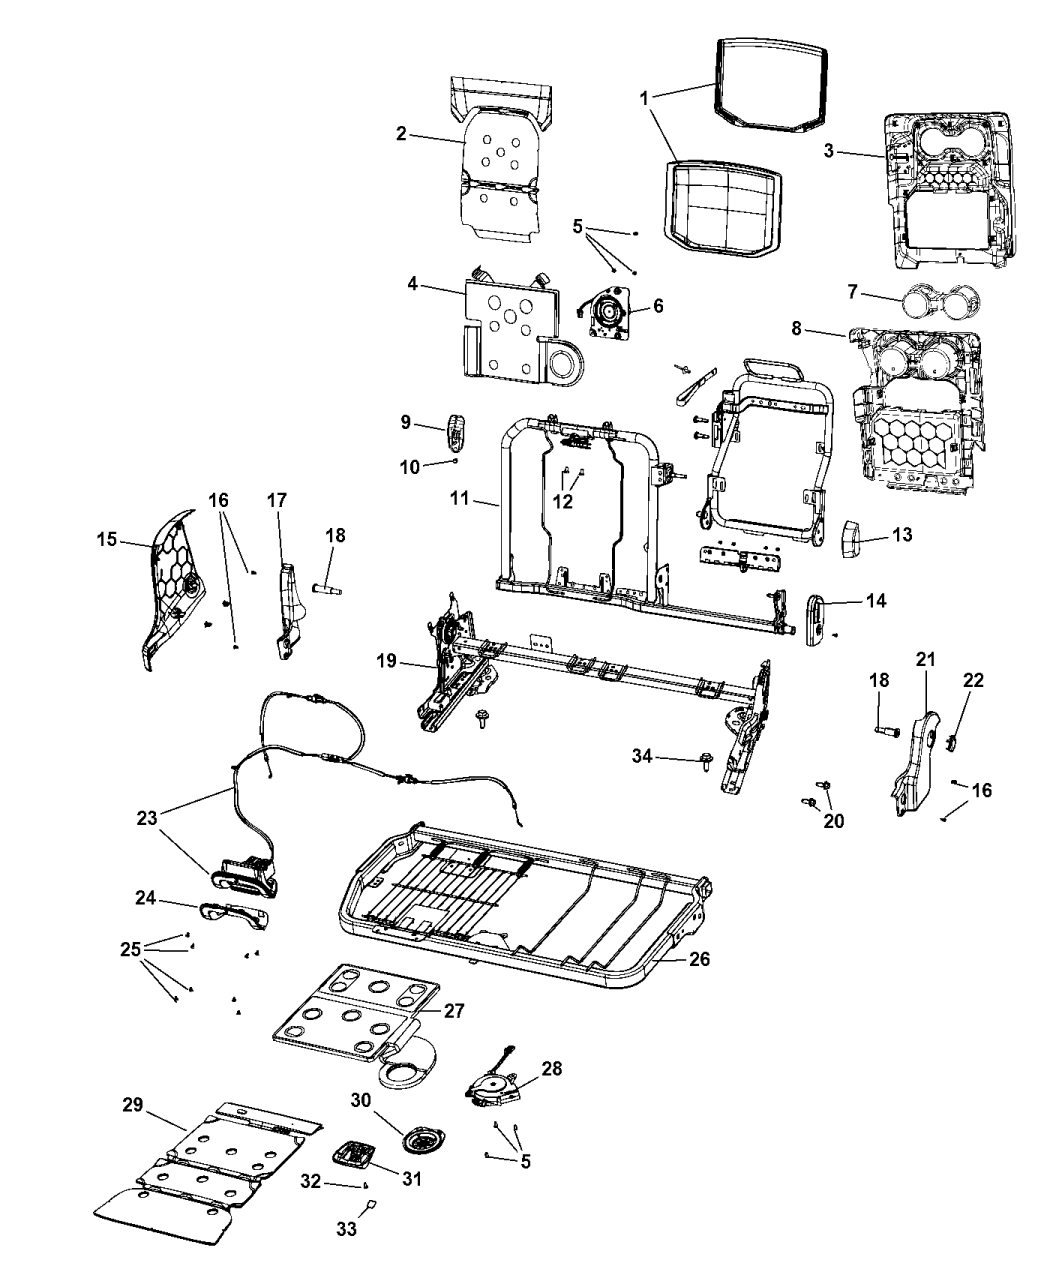 2020 Ram 1500 Second Row - Rear Seat Hardware, Split Seat